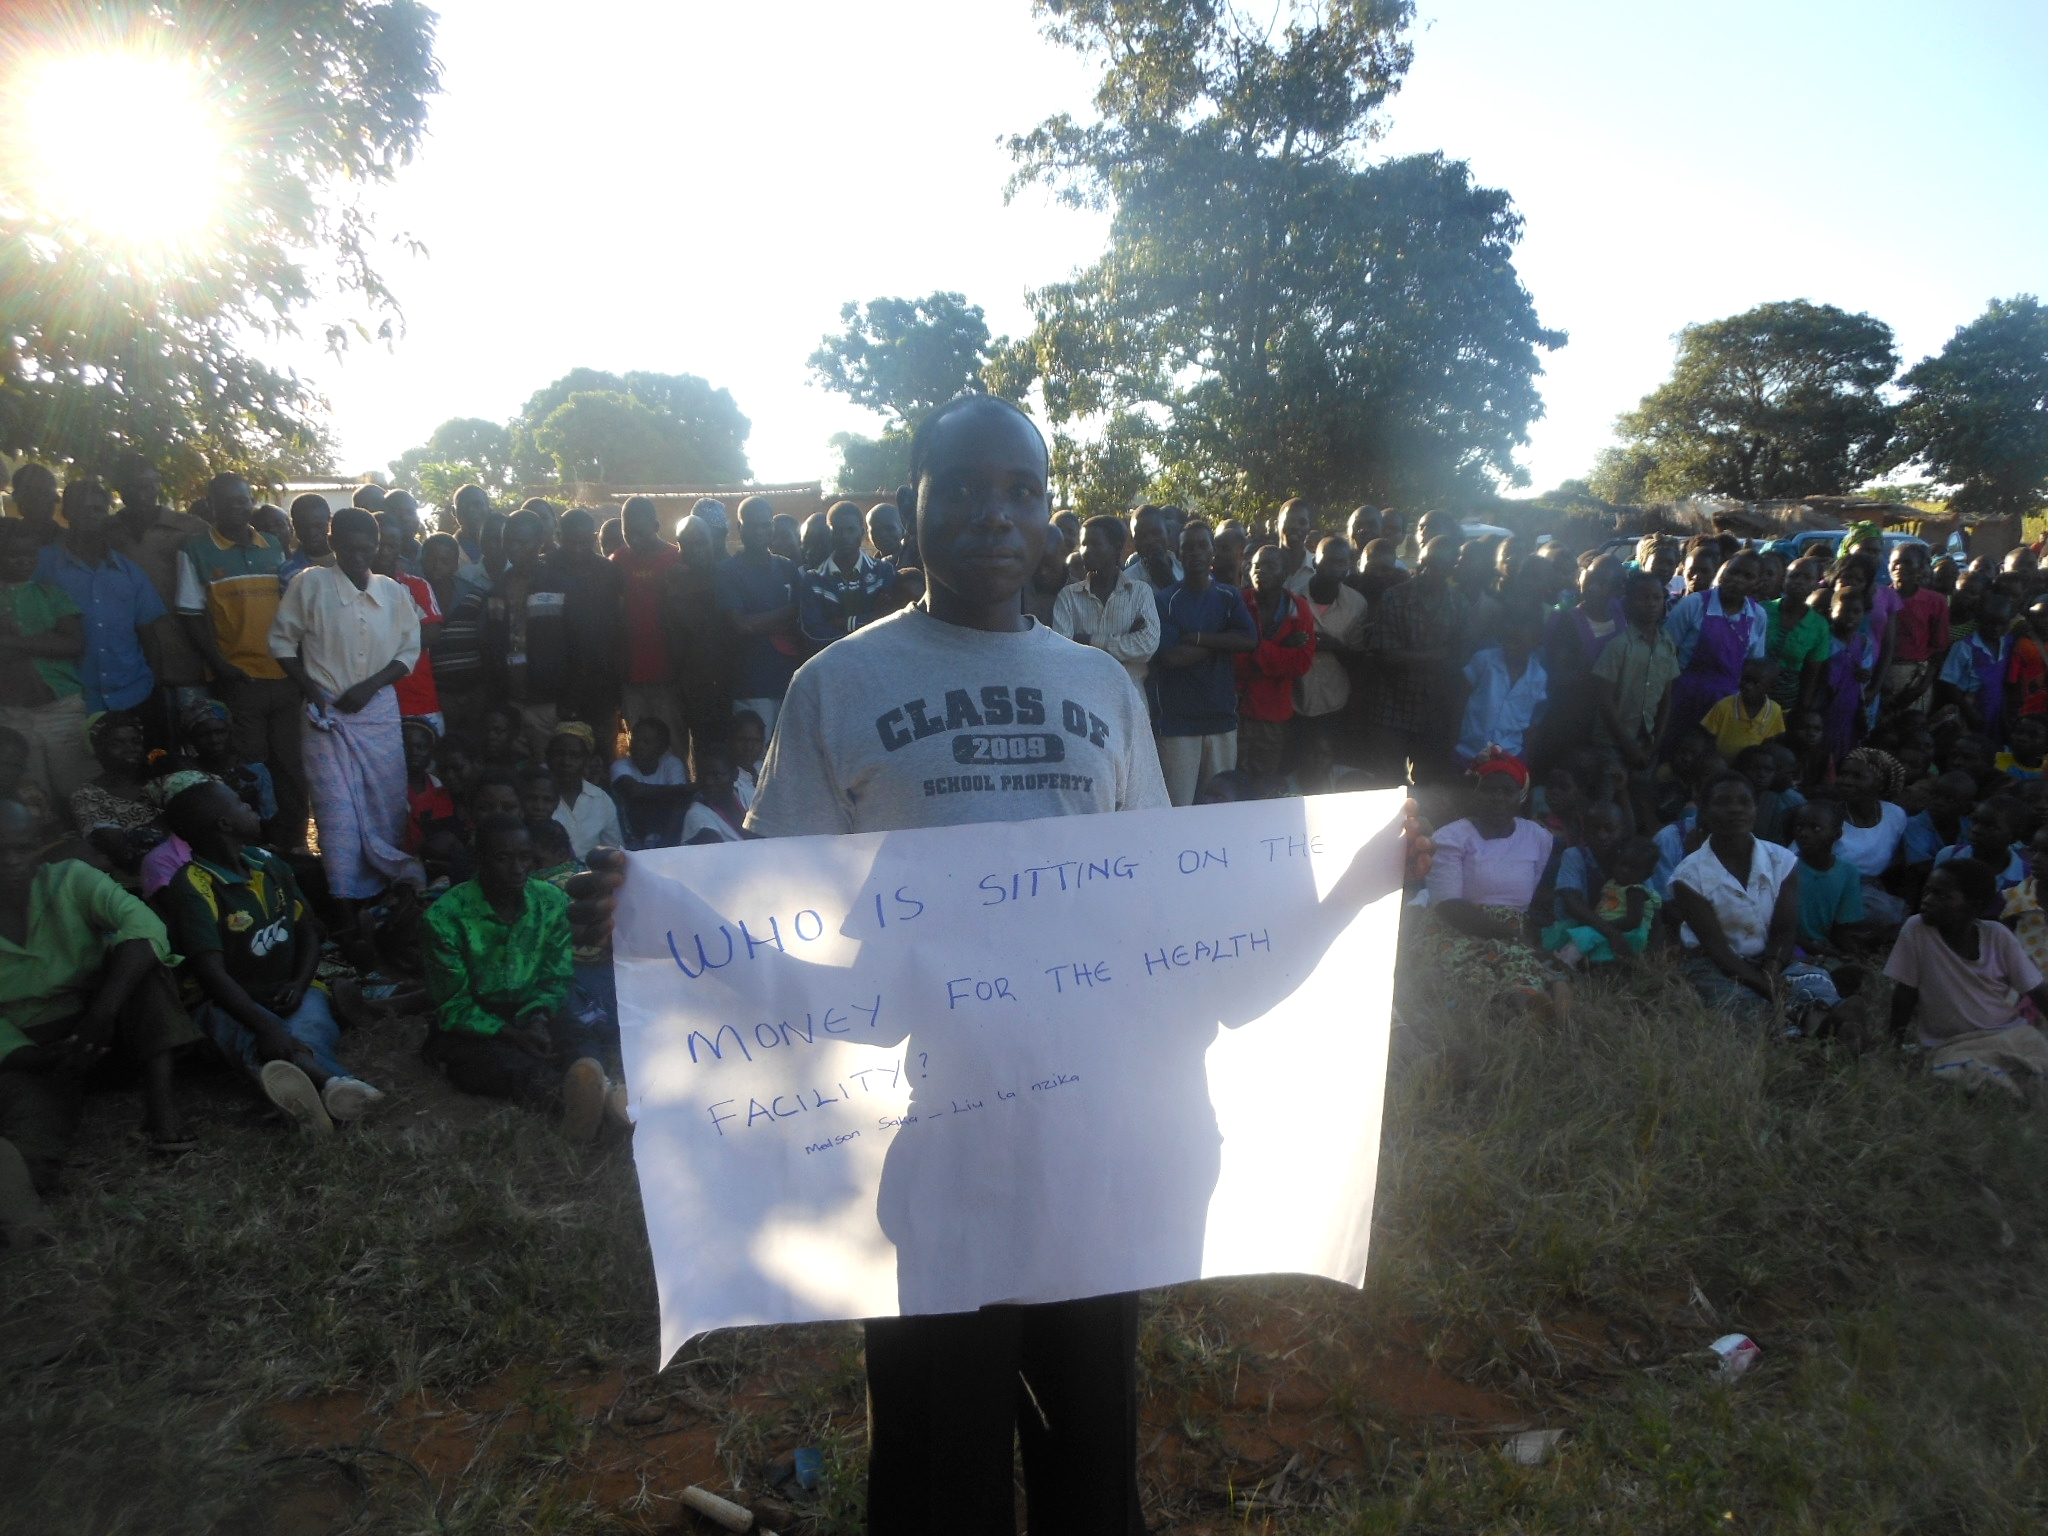 CITIZEN QUOTE- who is sitting on the money for the health facility - no name.jpg